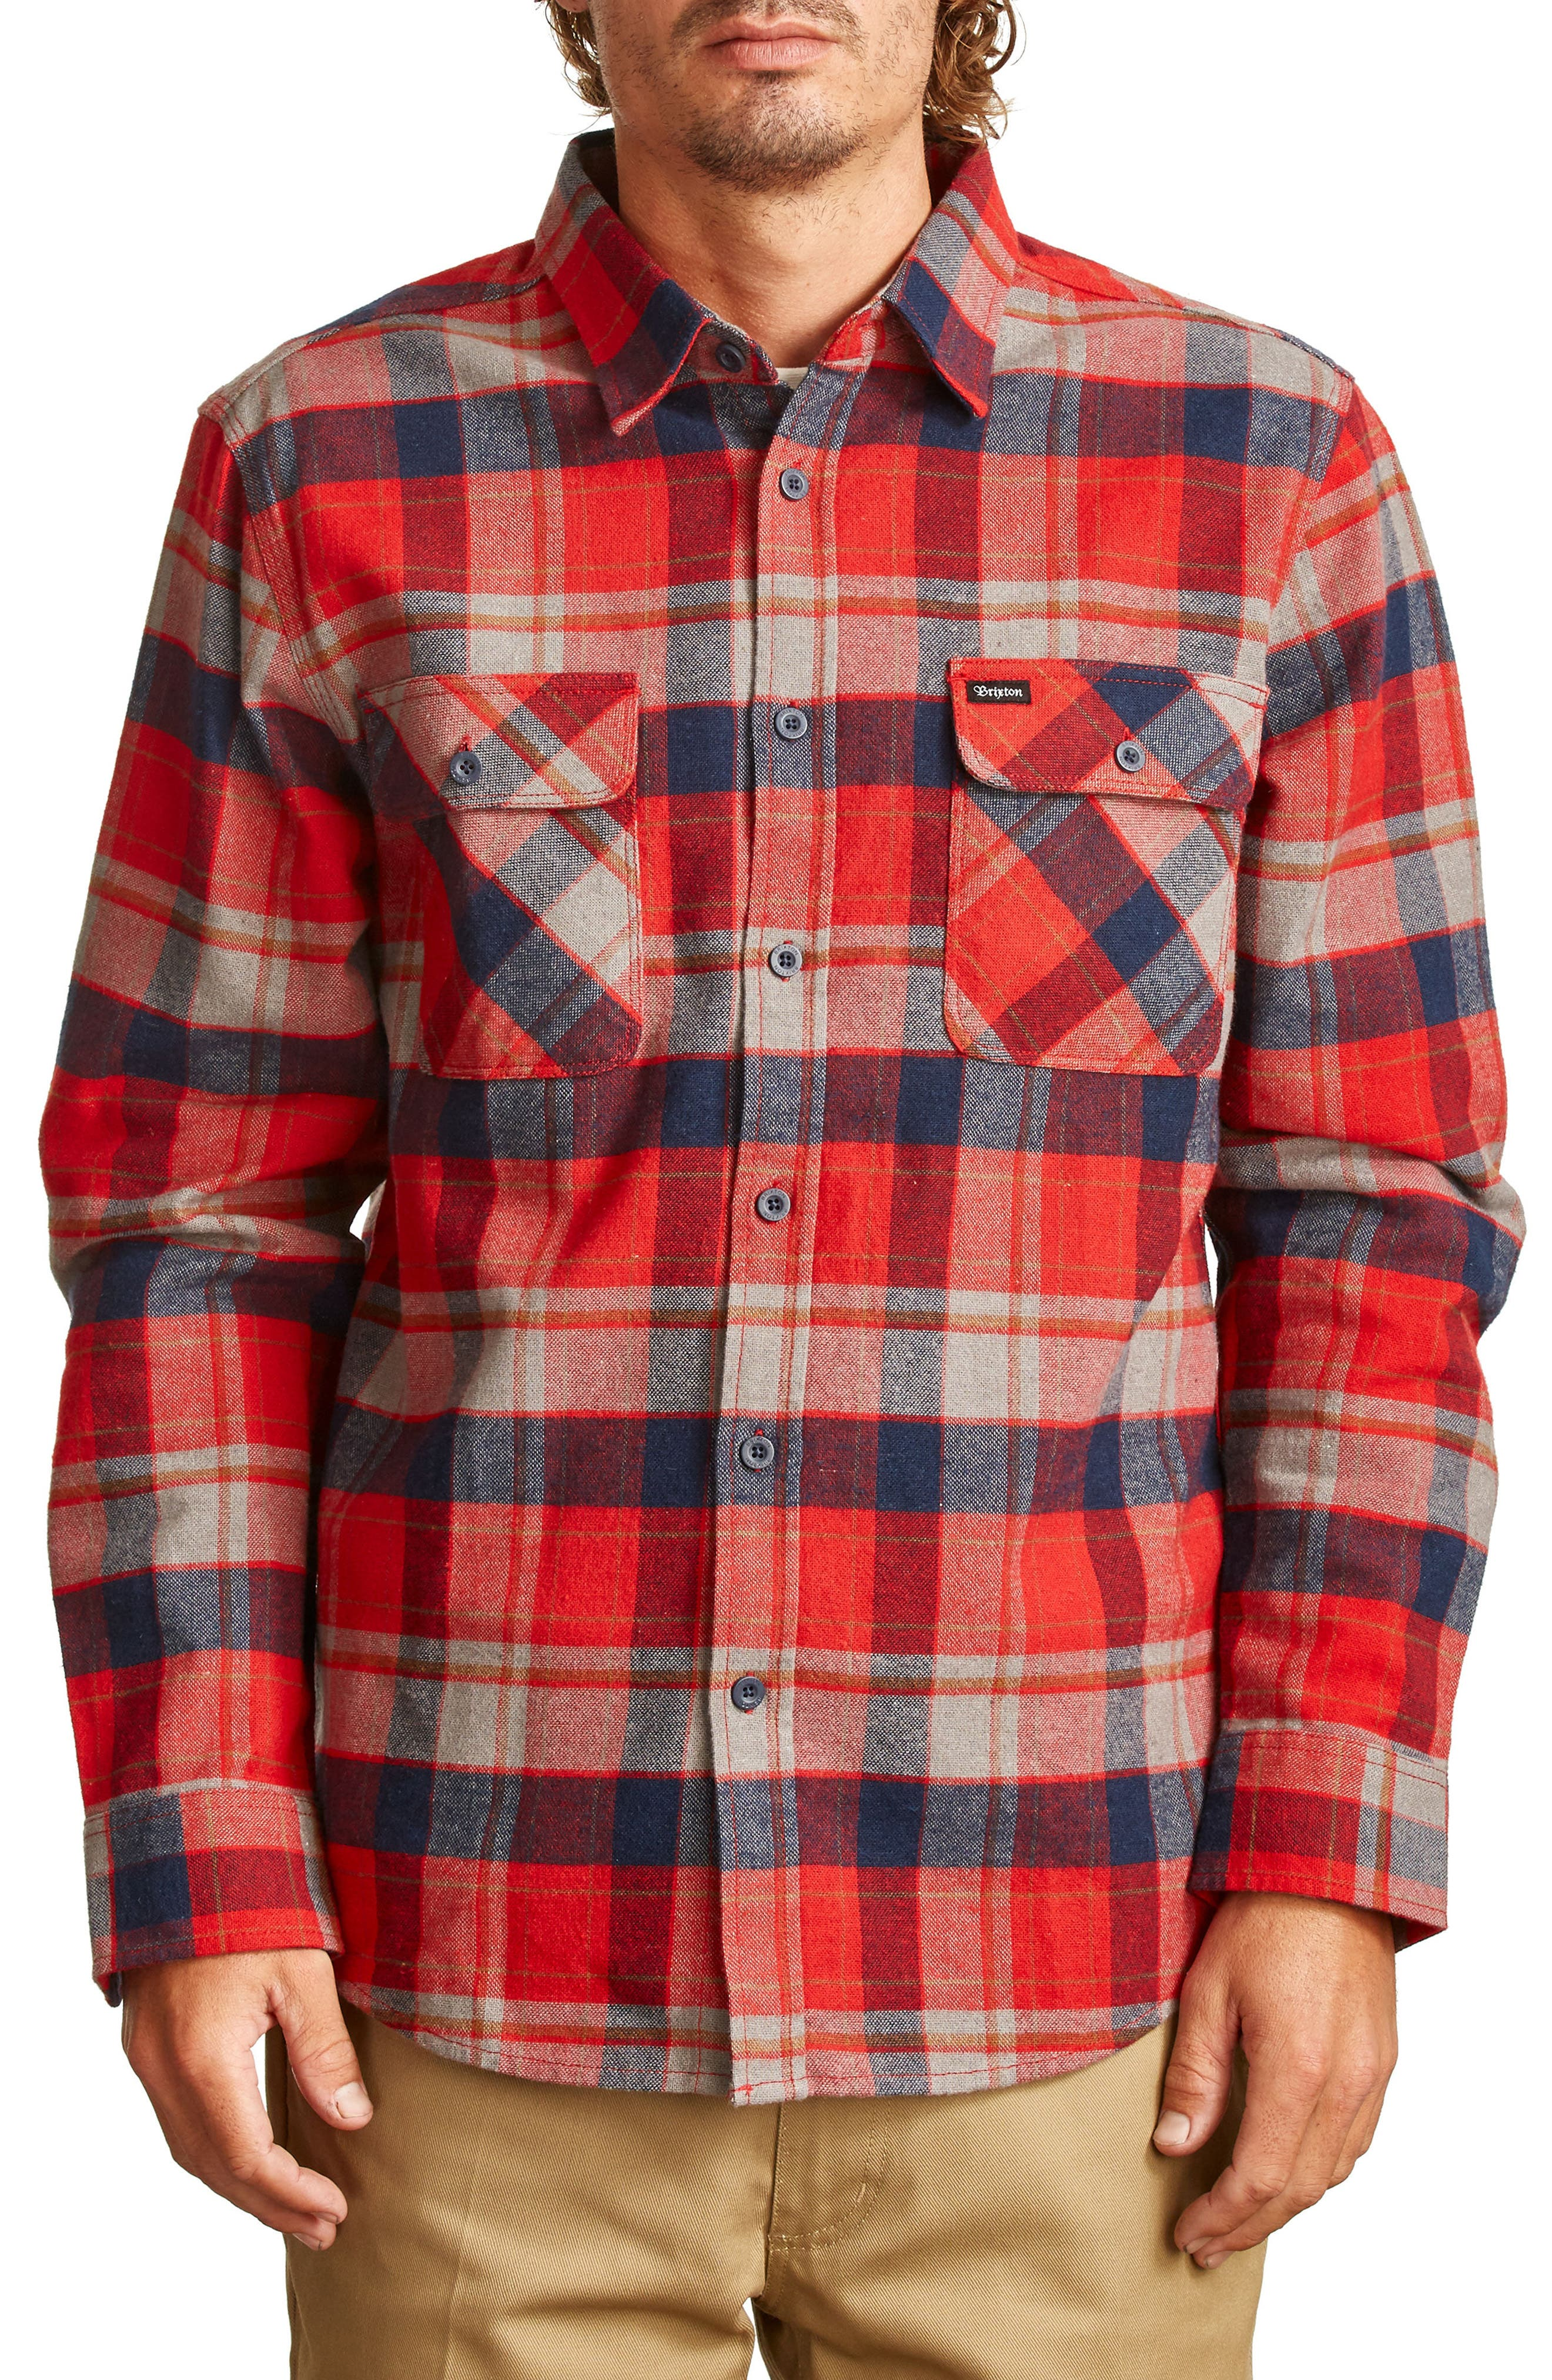 Gift Certificates/Cards International Hot New Releases Best Sellers Today's Deals Long sleeve flannel shirt for men, if you need more room, please buy Abollria Women's Roll up Long Sleeve Boyfriend Button Down Plaid Flannel Shirt (S-XXL Product Features Comfy and durable,this classic flannel shirt is a Great addition to Any. JJ.